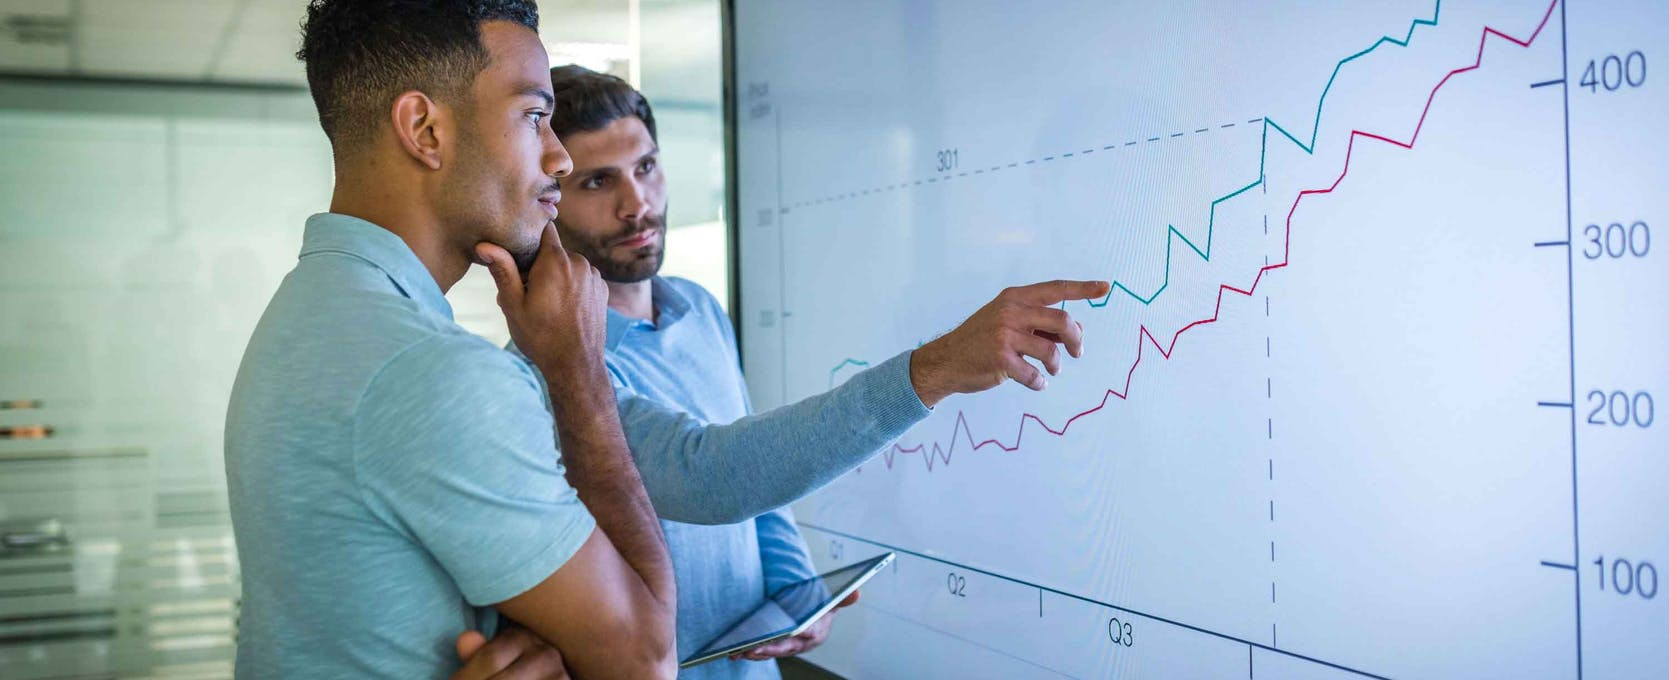 Two advisors reviewing financial services dashboard data